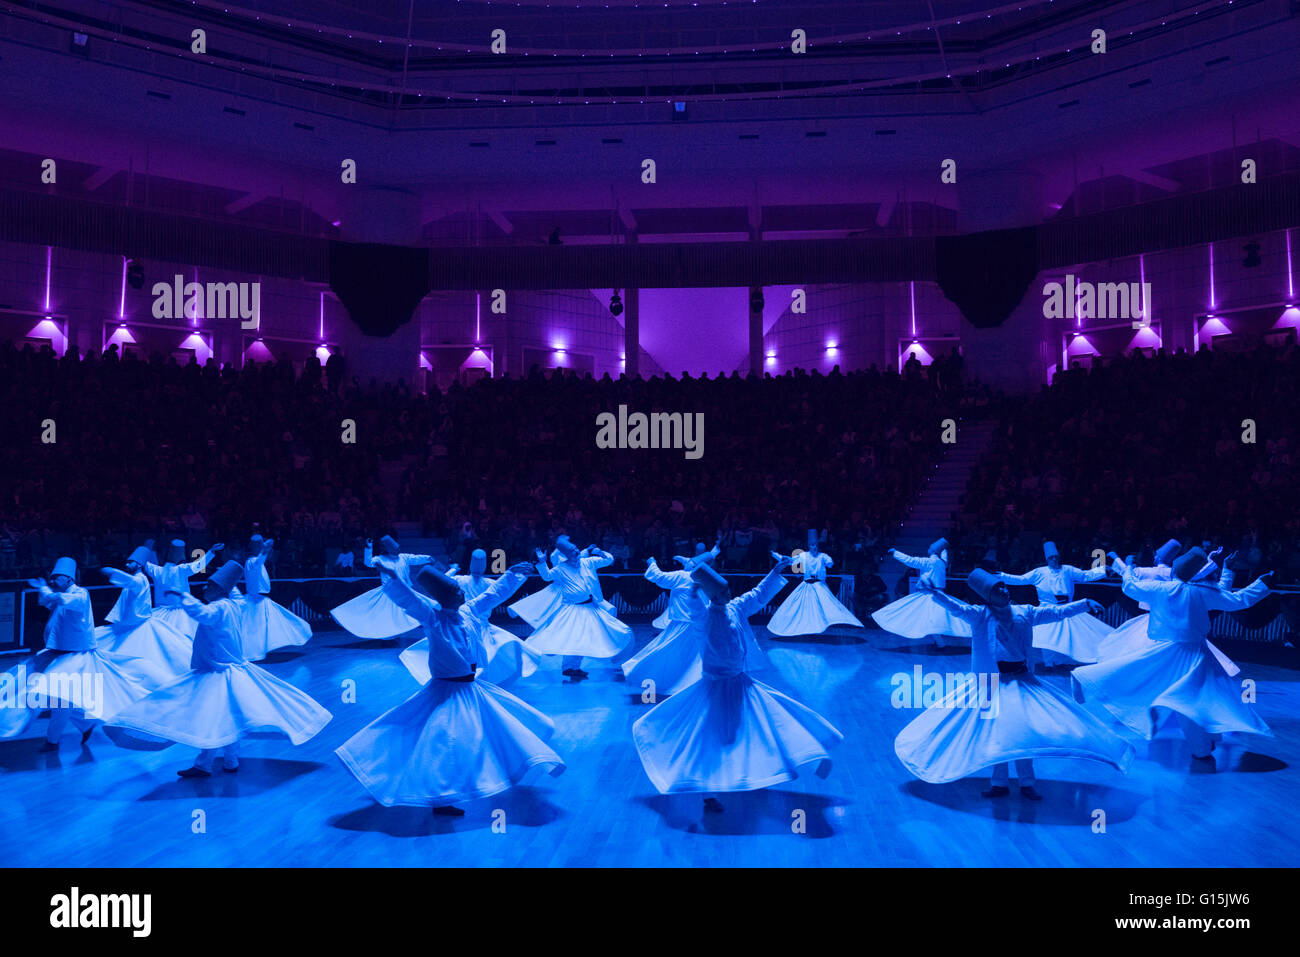 Whirling Dervishes at the Mevlana Culture Centre, Konya, Central Anatolia, Turkey, Asia Minor, Eurasia - Stock Image